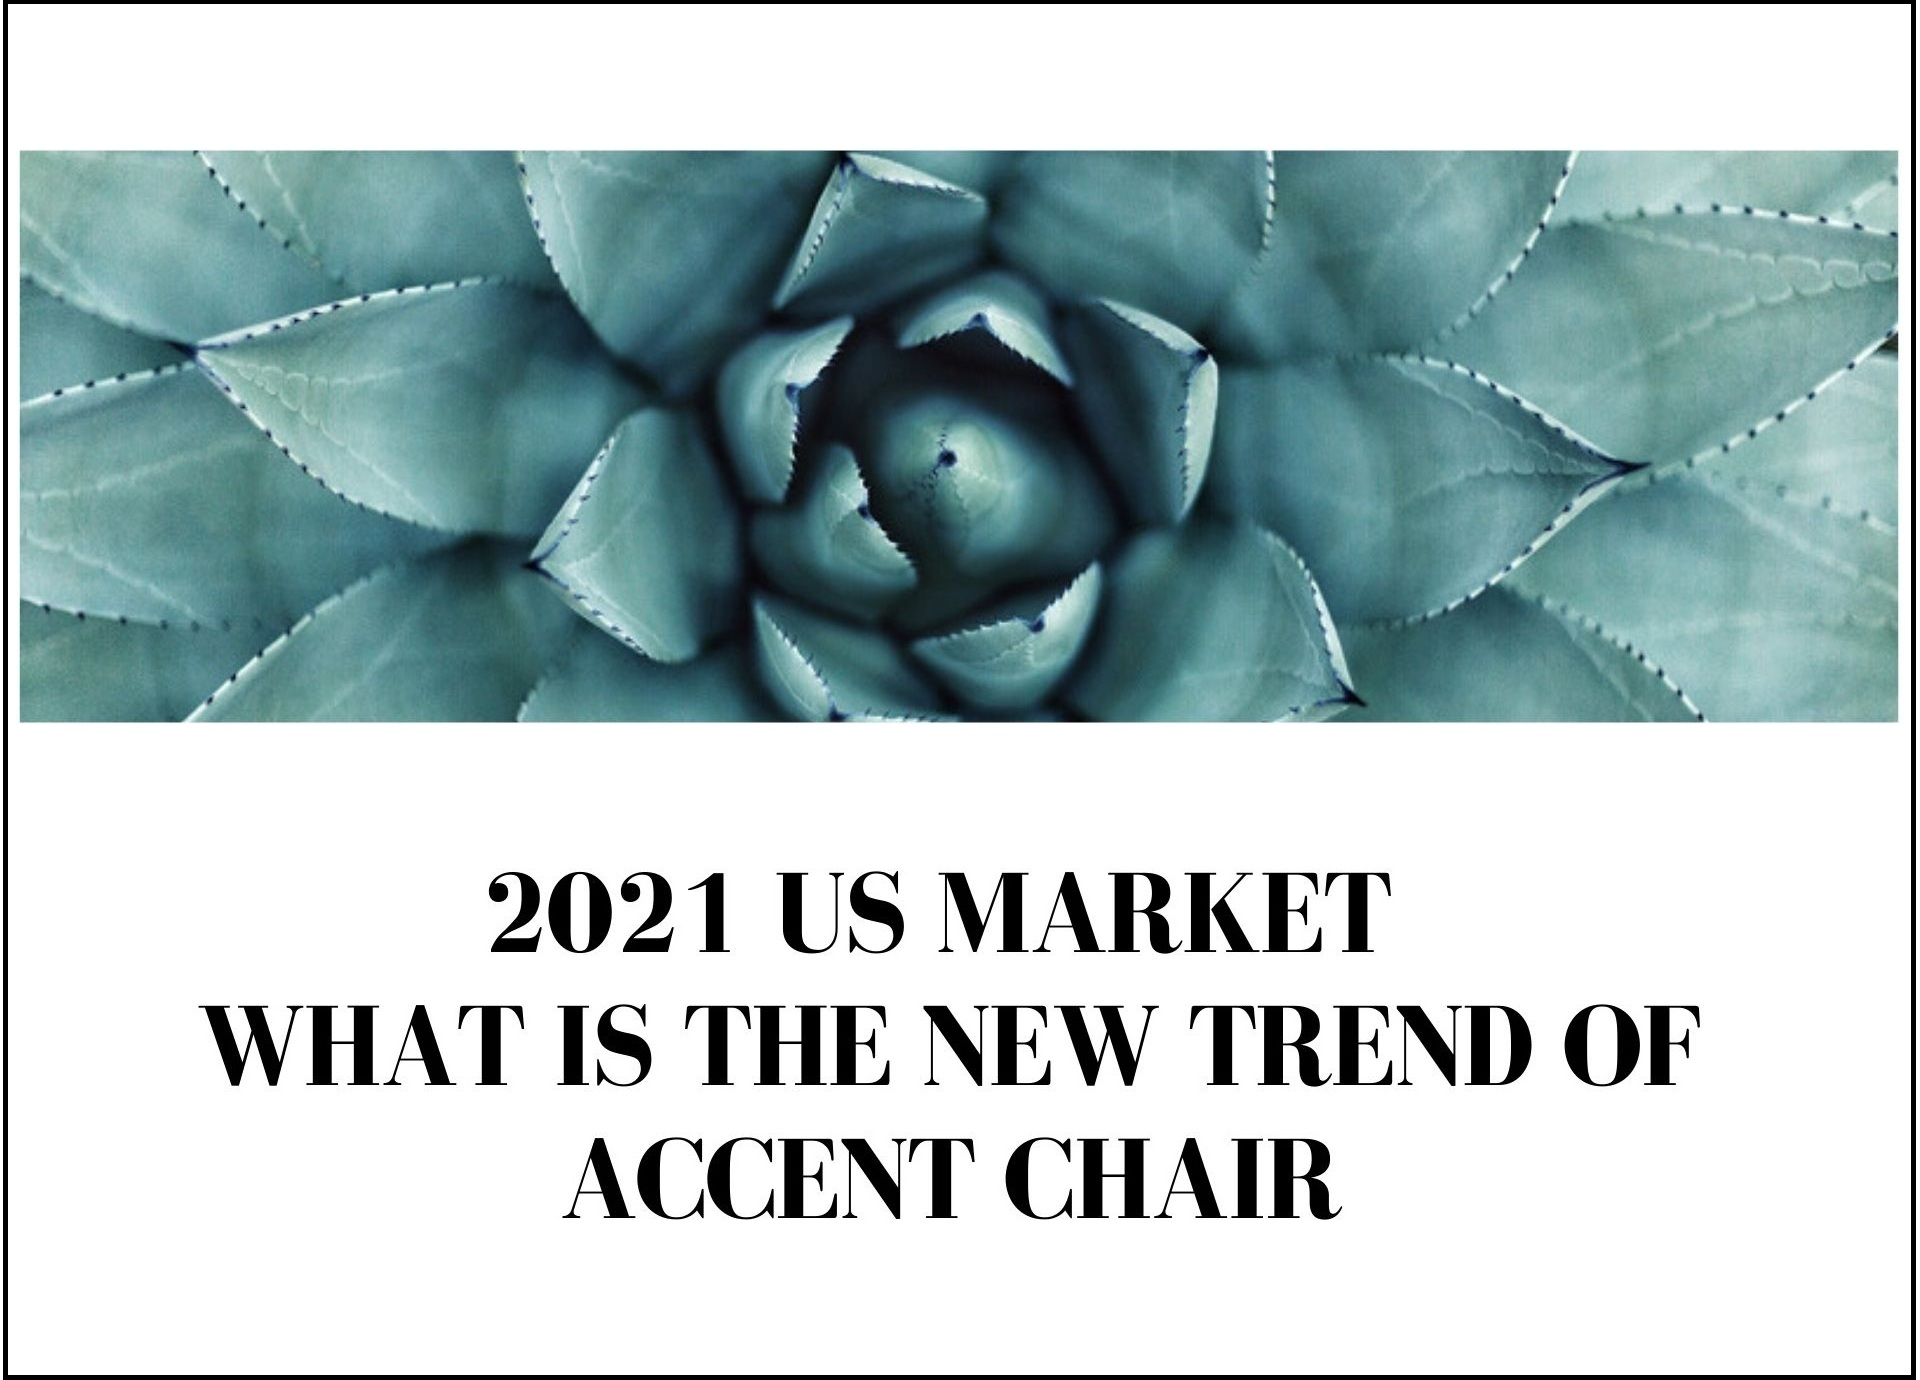 What is the new trend of accent chair in 2021 US market?